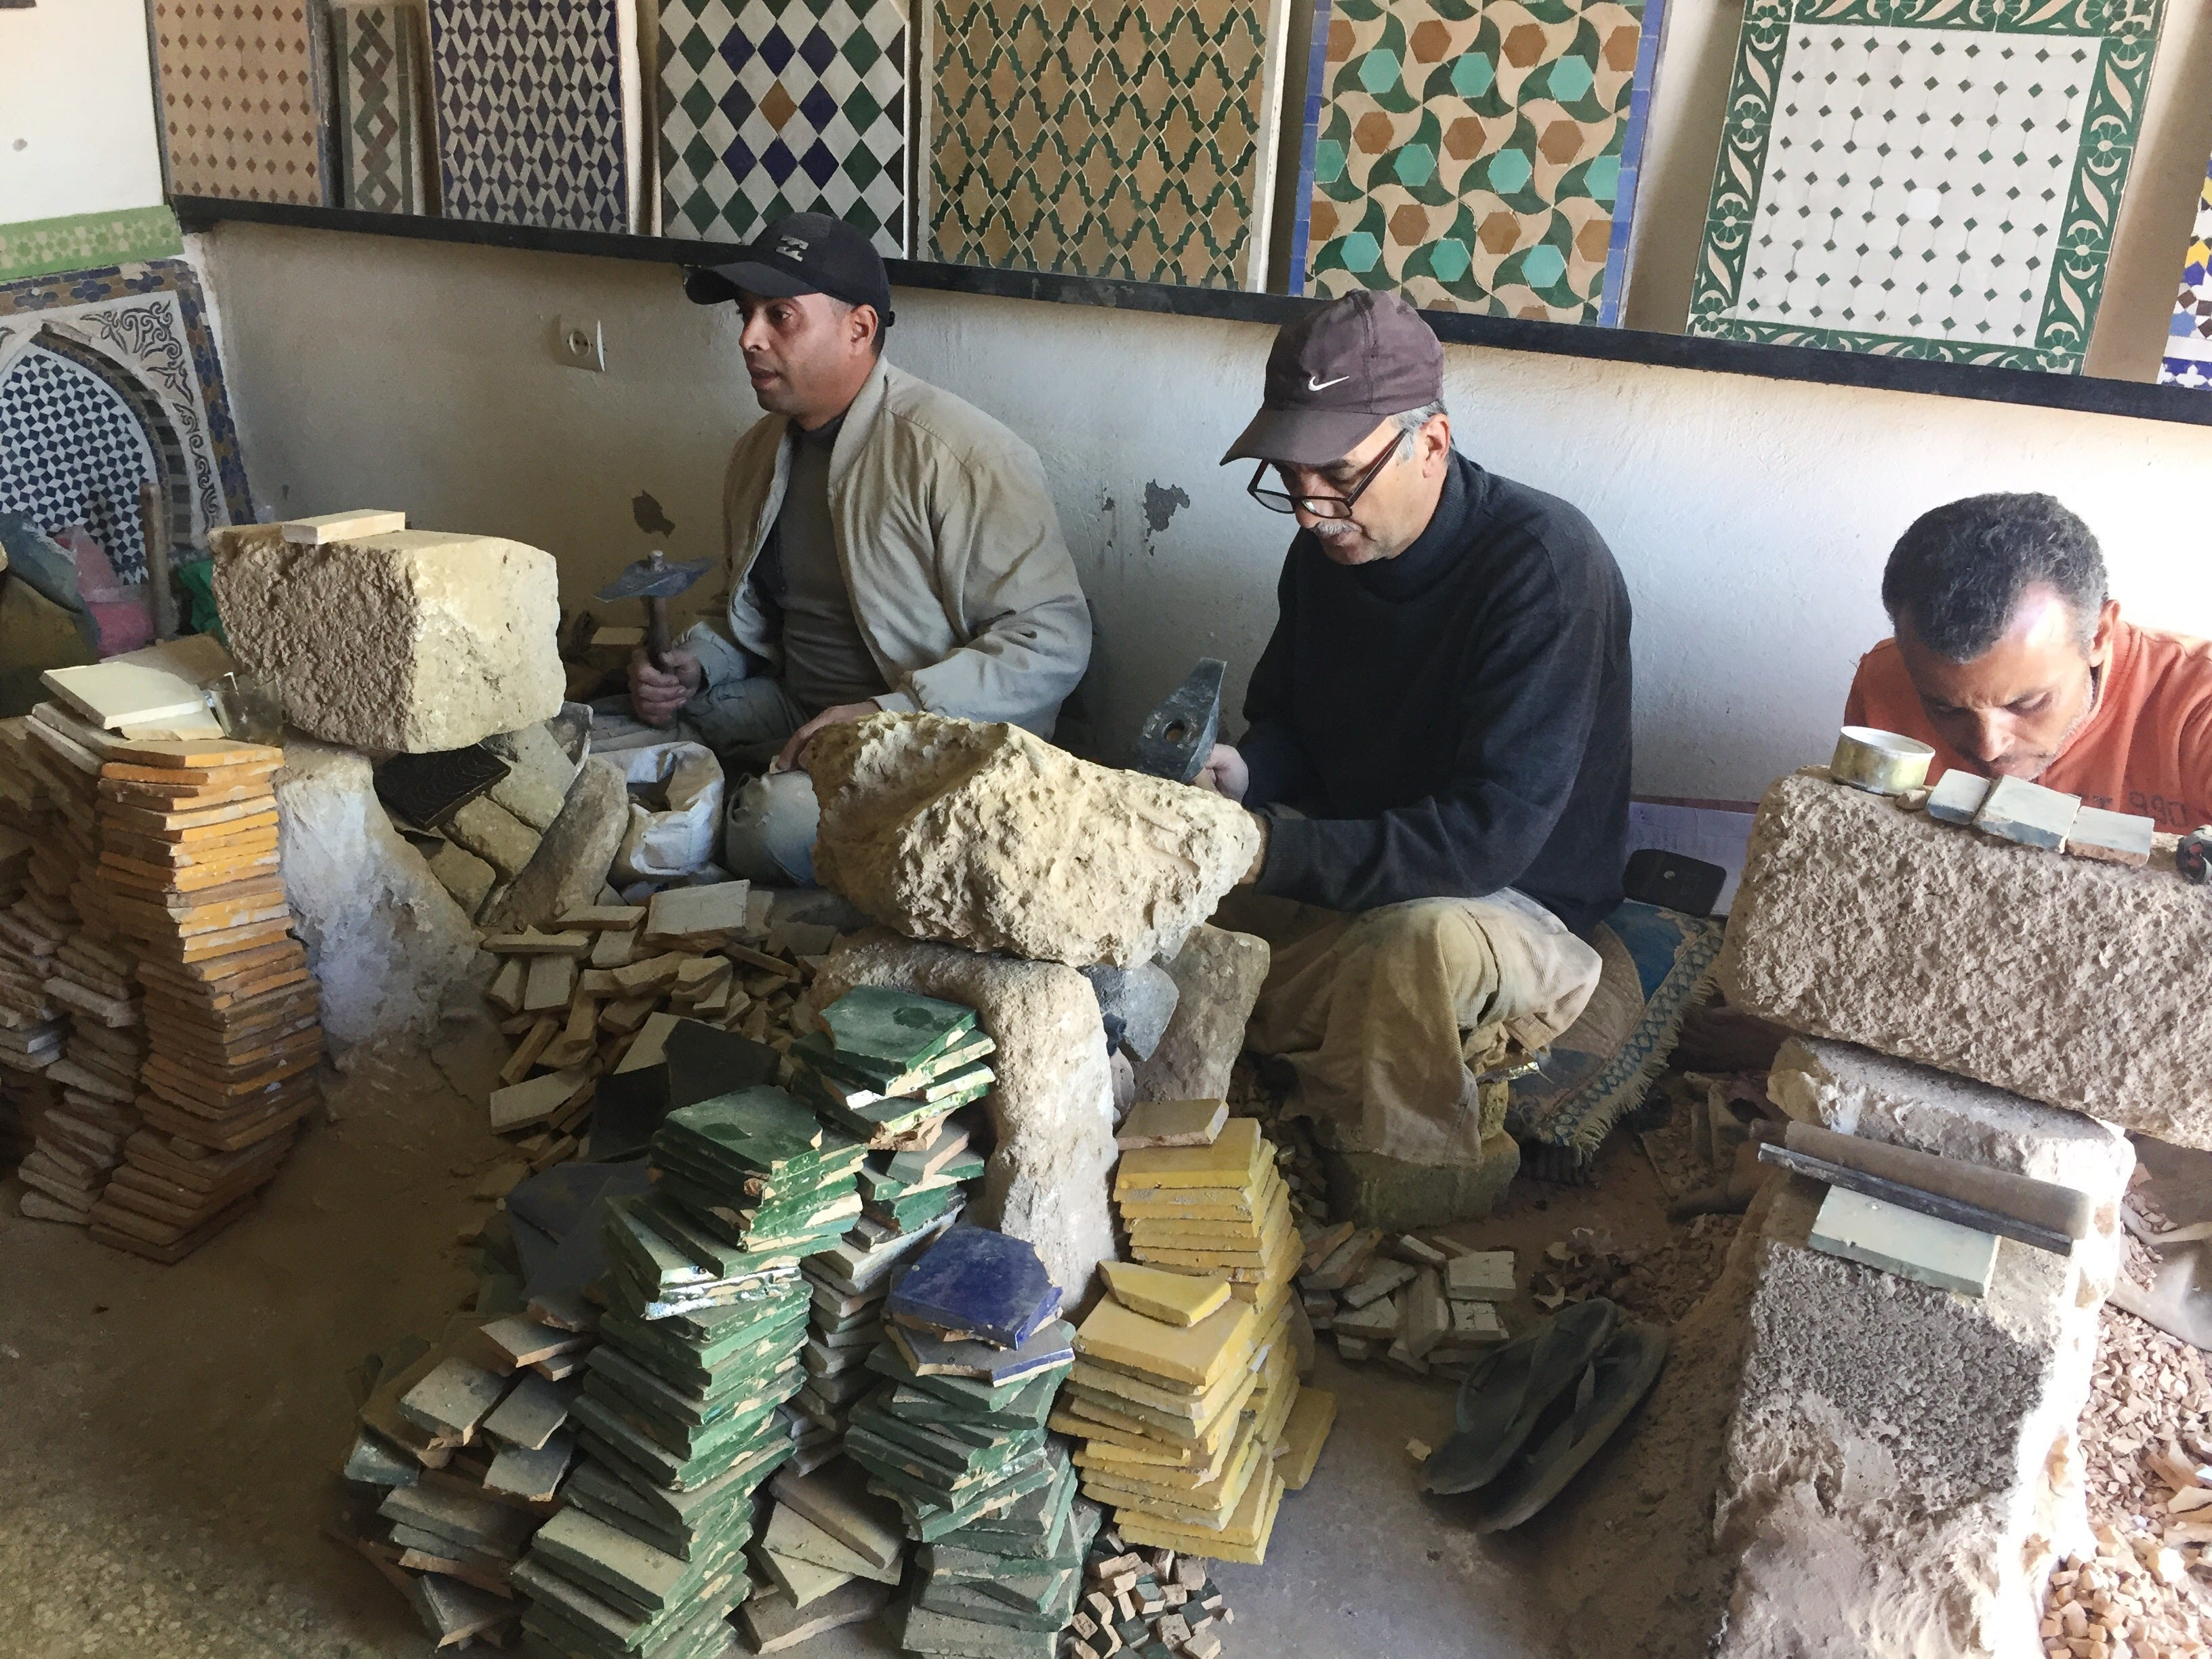 Crafting mosaic tile is an endangered tradition. Here are the folks keeping it alive